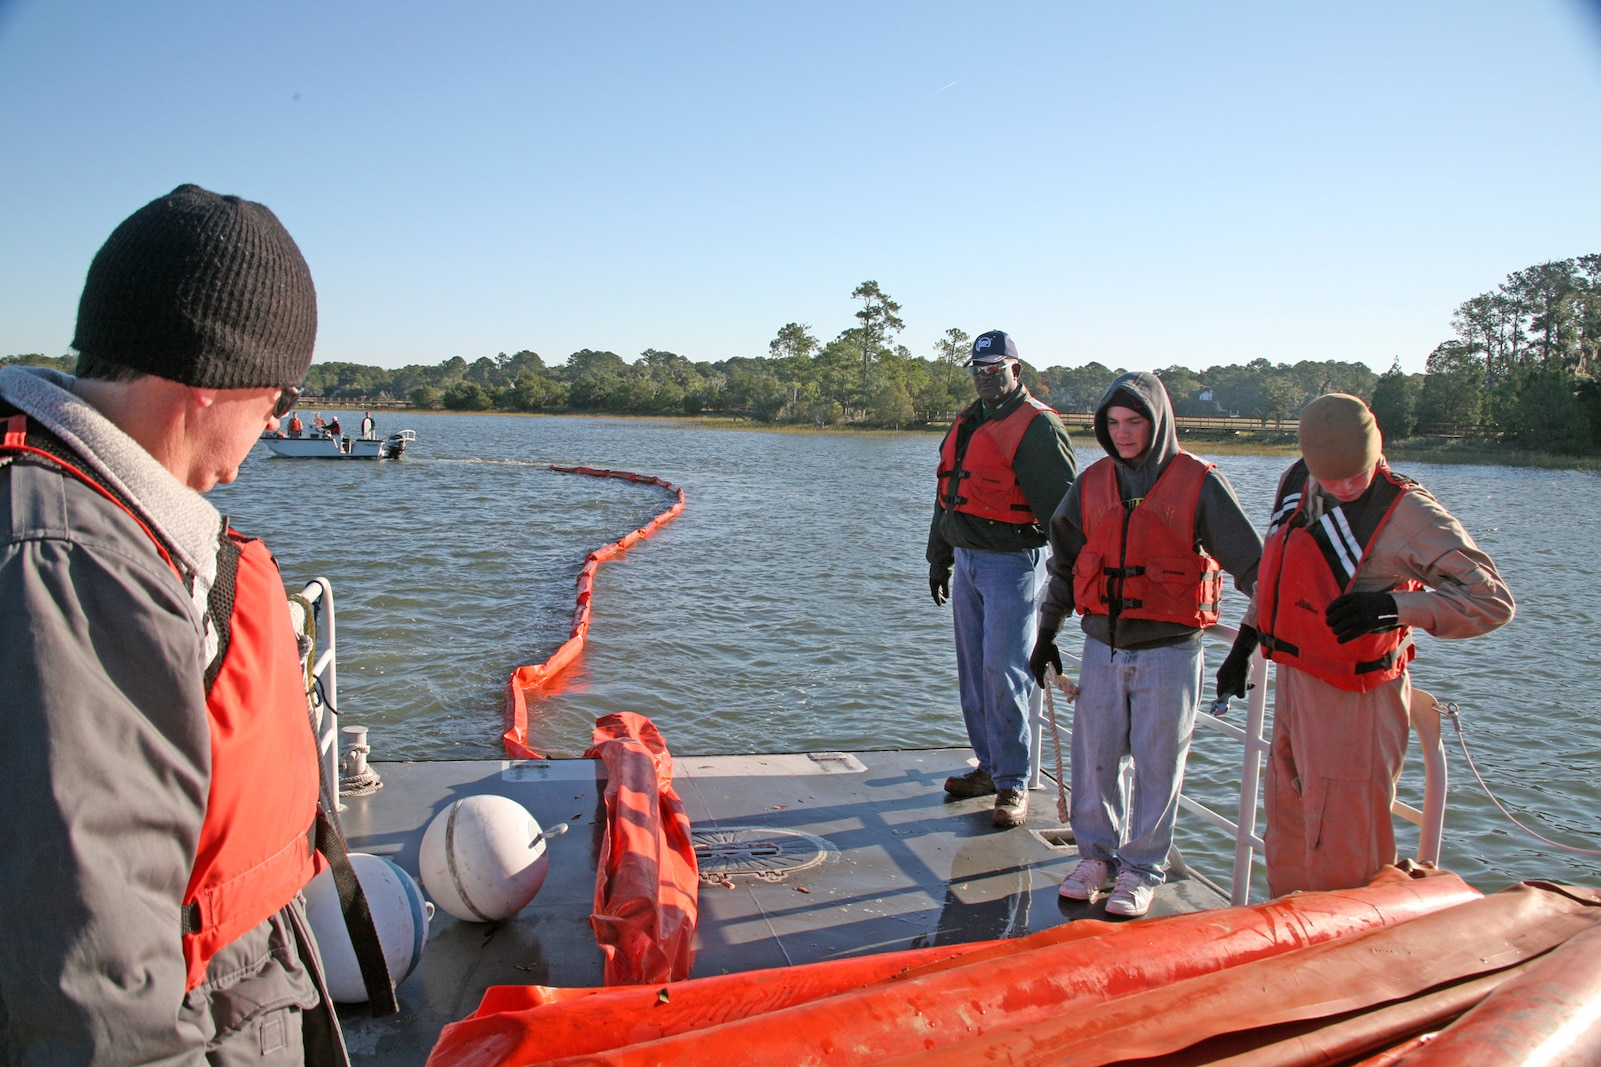 MARINE CORPS AIR STATION BEAUFORT, S.C. - Members of the Facility Response Team observe the booms being towed out to the water to ensure there are no tangles during a simulated oil spill training exercise Oct. 29, at the station's fuel pier.